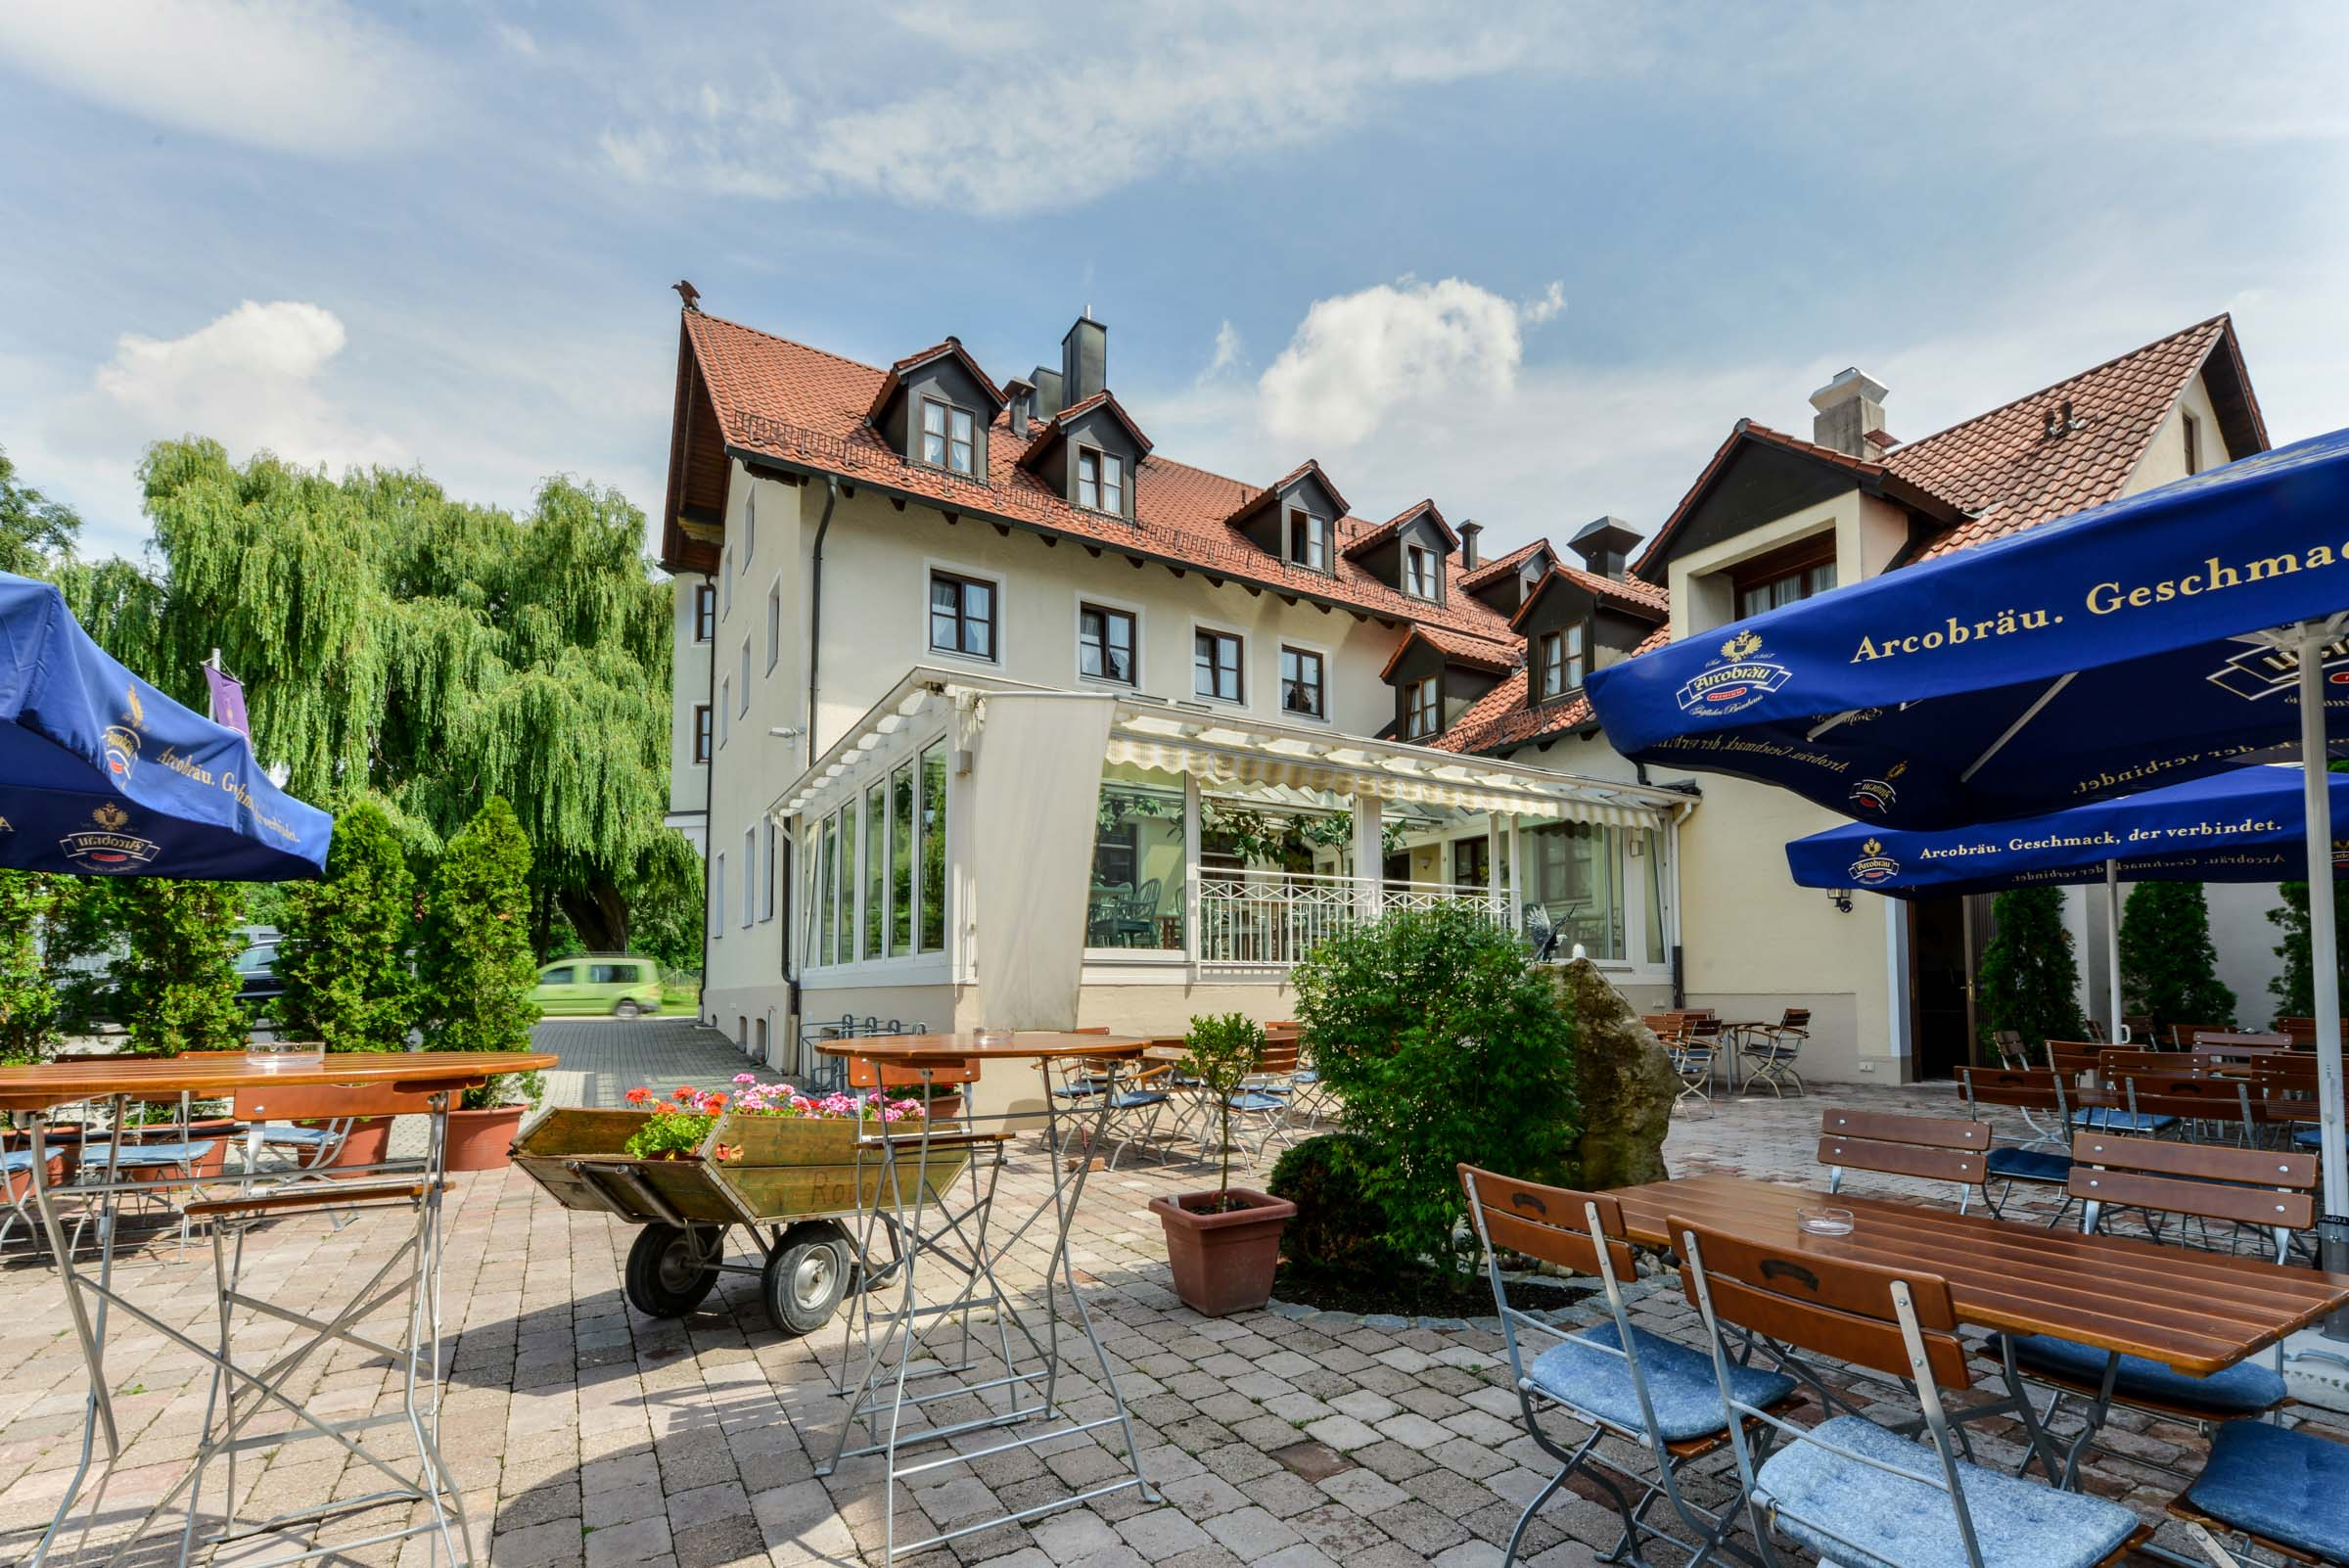 Restaurant Nagerl Marzling with beer garden